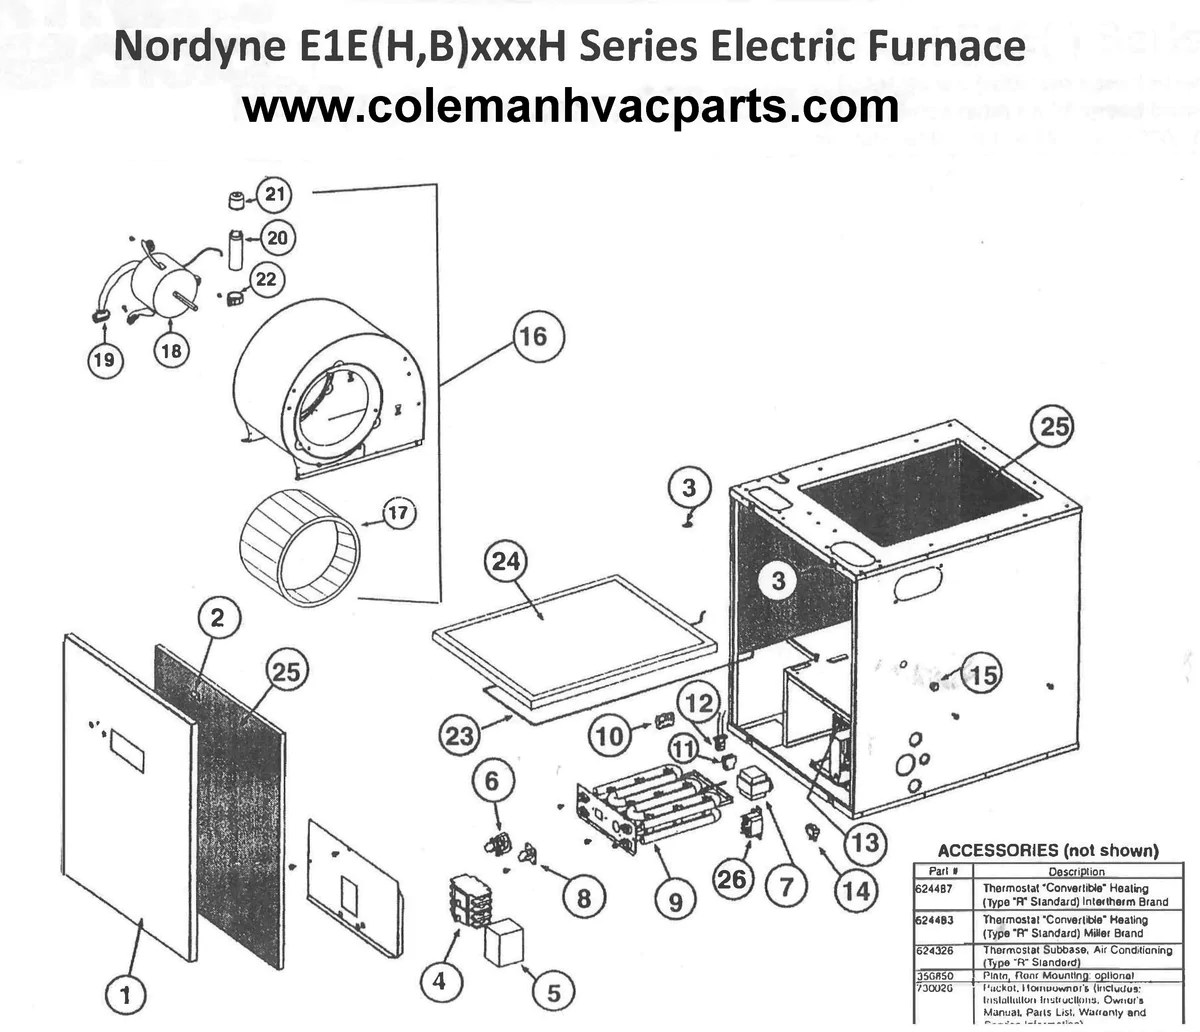 mobile home furnace feh 105ha wiring diagram schematic diagrammobile home intertherm furnace wiring diagram feh o12 [ 1199 x 1032 Pixel ]